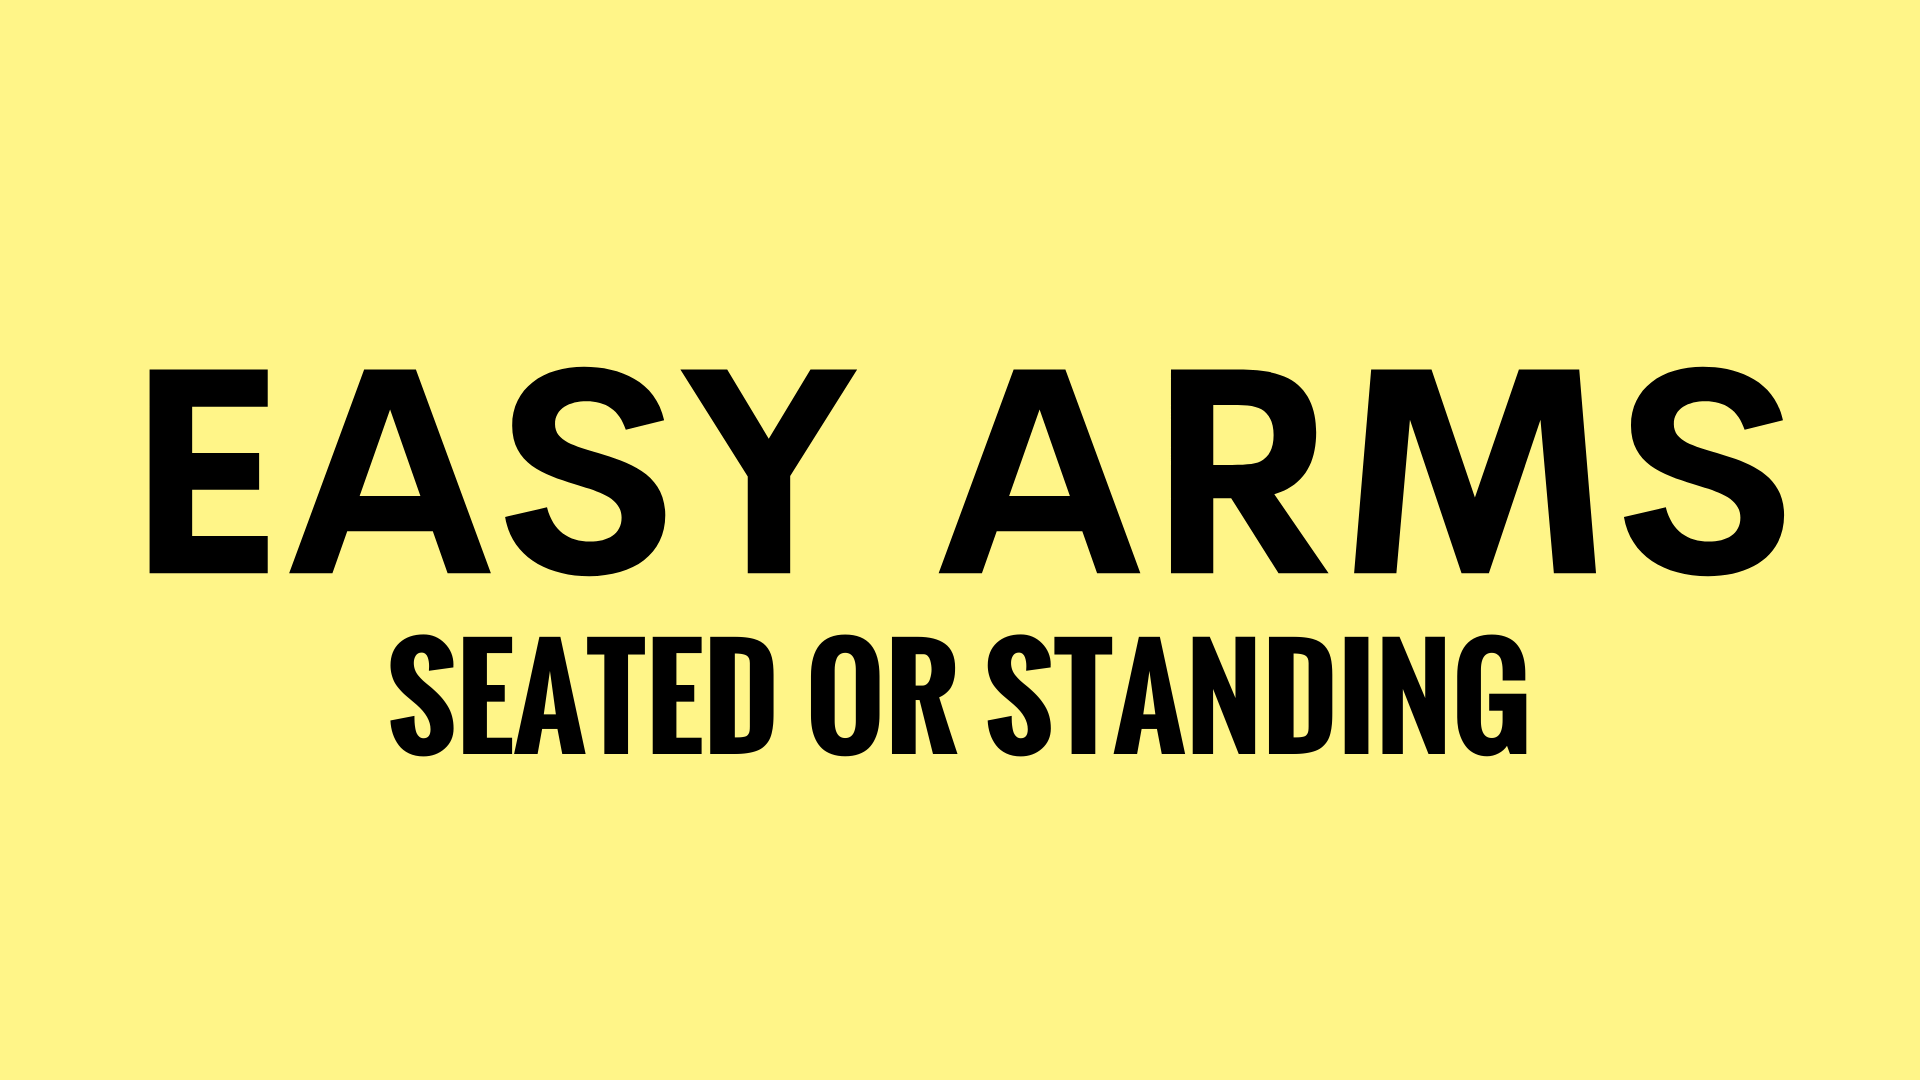 EASY ARMS SEATED OR STANDING